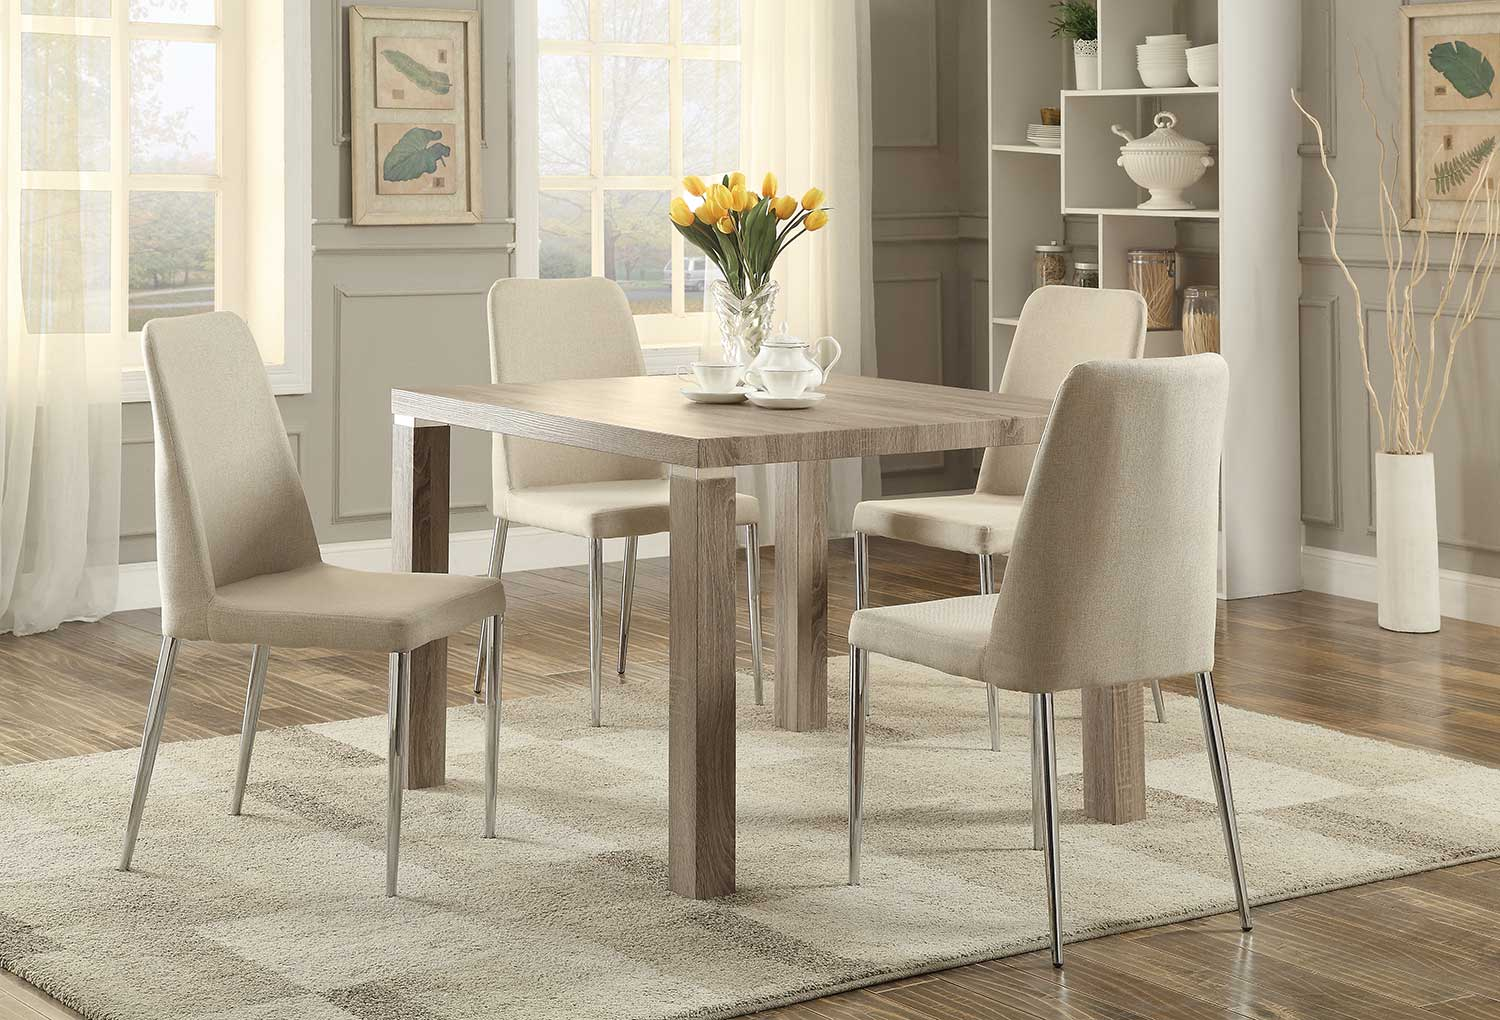 How to Update the Look of Your Dining Room Post-College: Part III